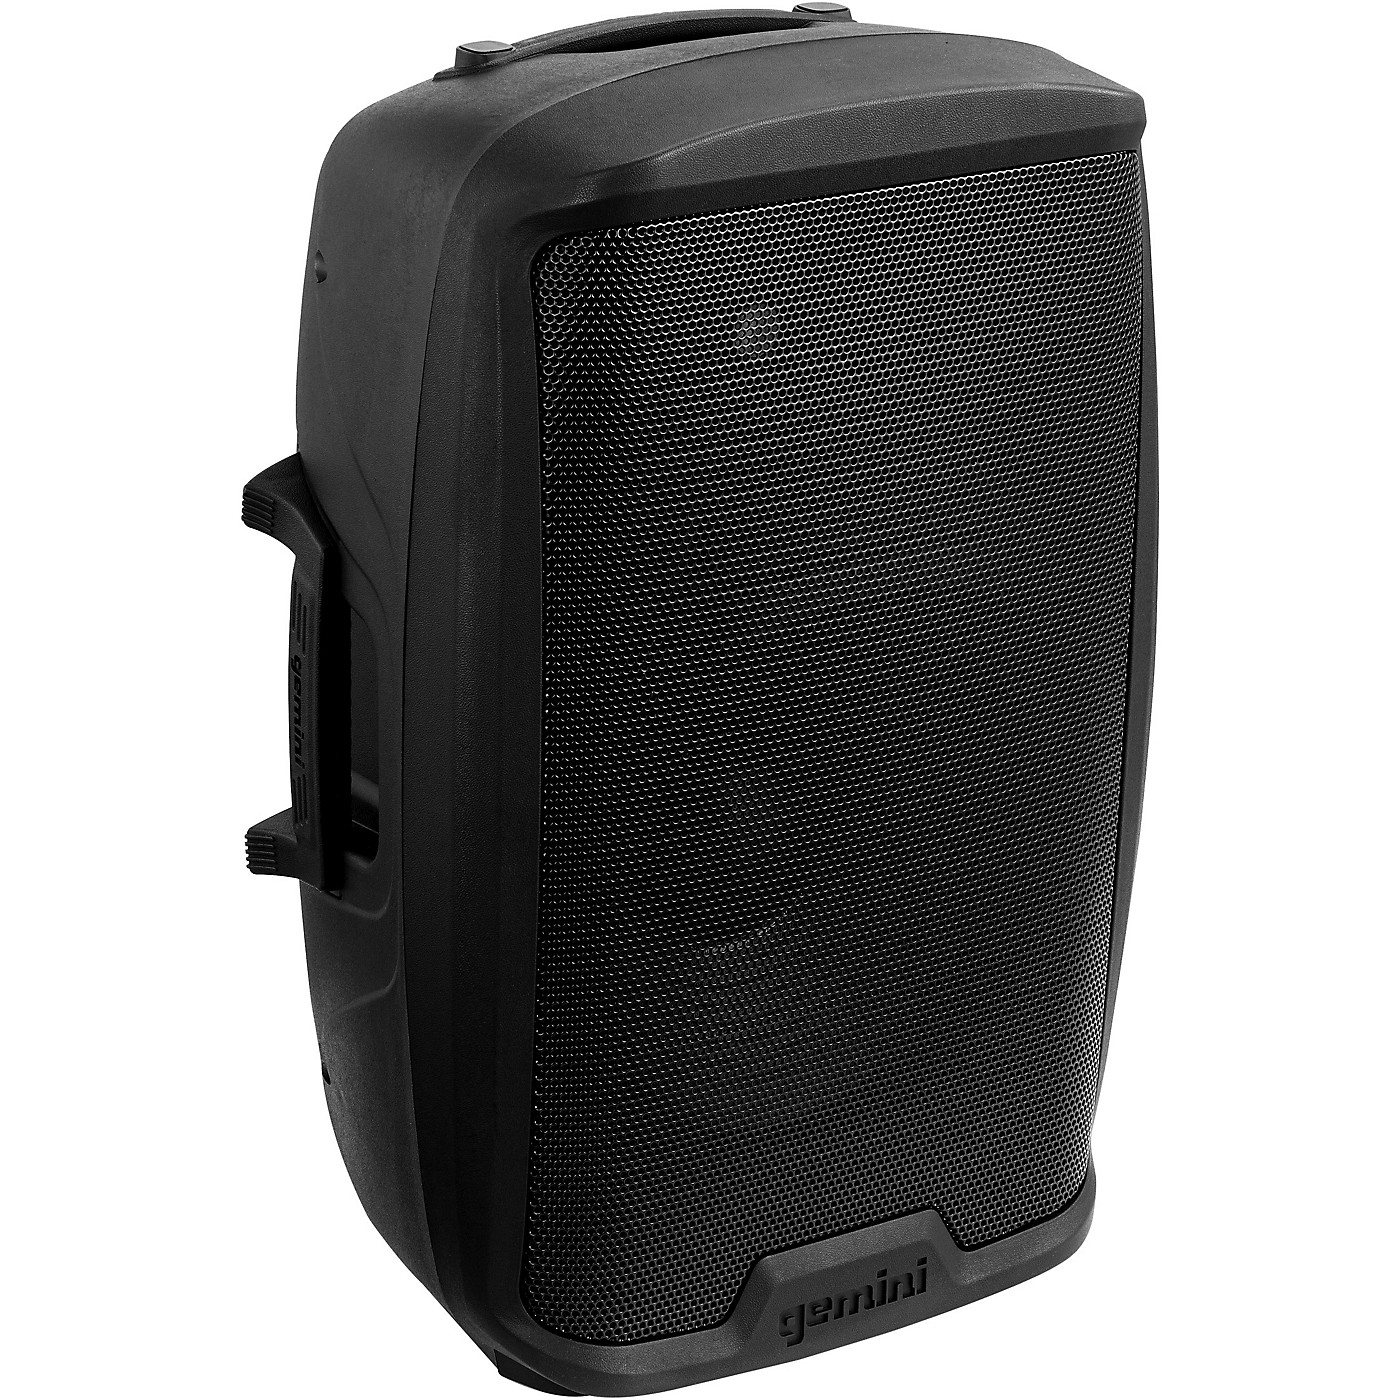 Gemini AS-2115BT 15 in. 2000 Watt Powered Loudspeaker With Bluetooth thumbnail